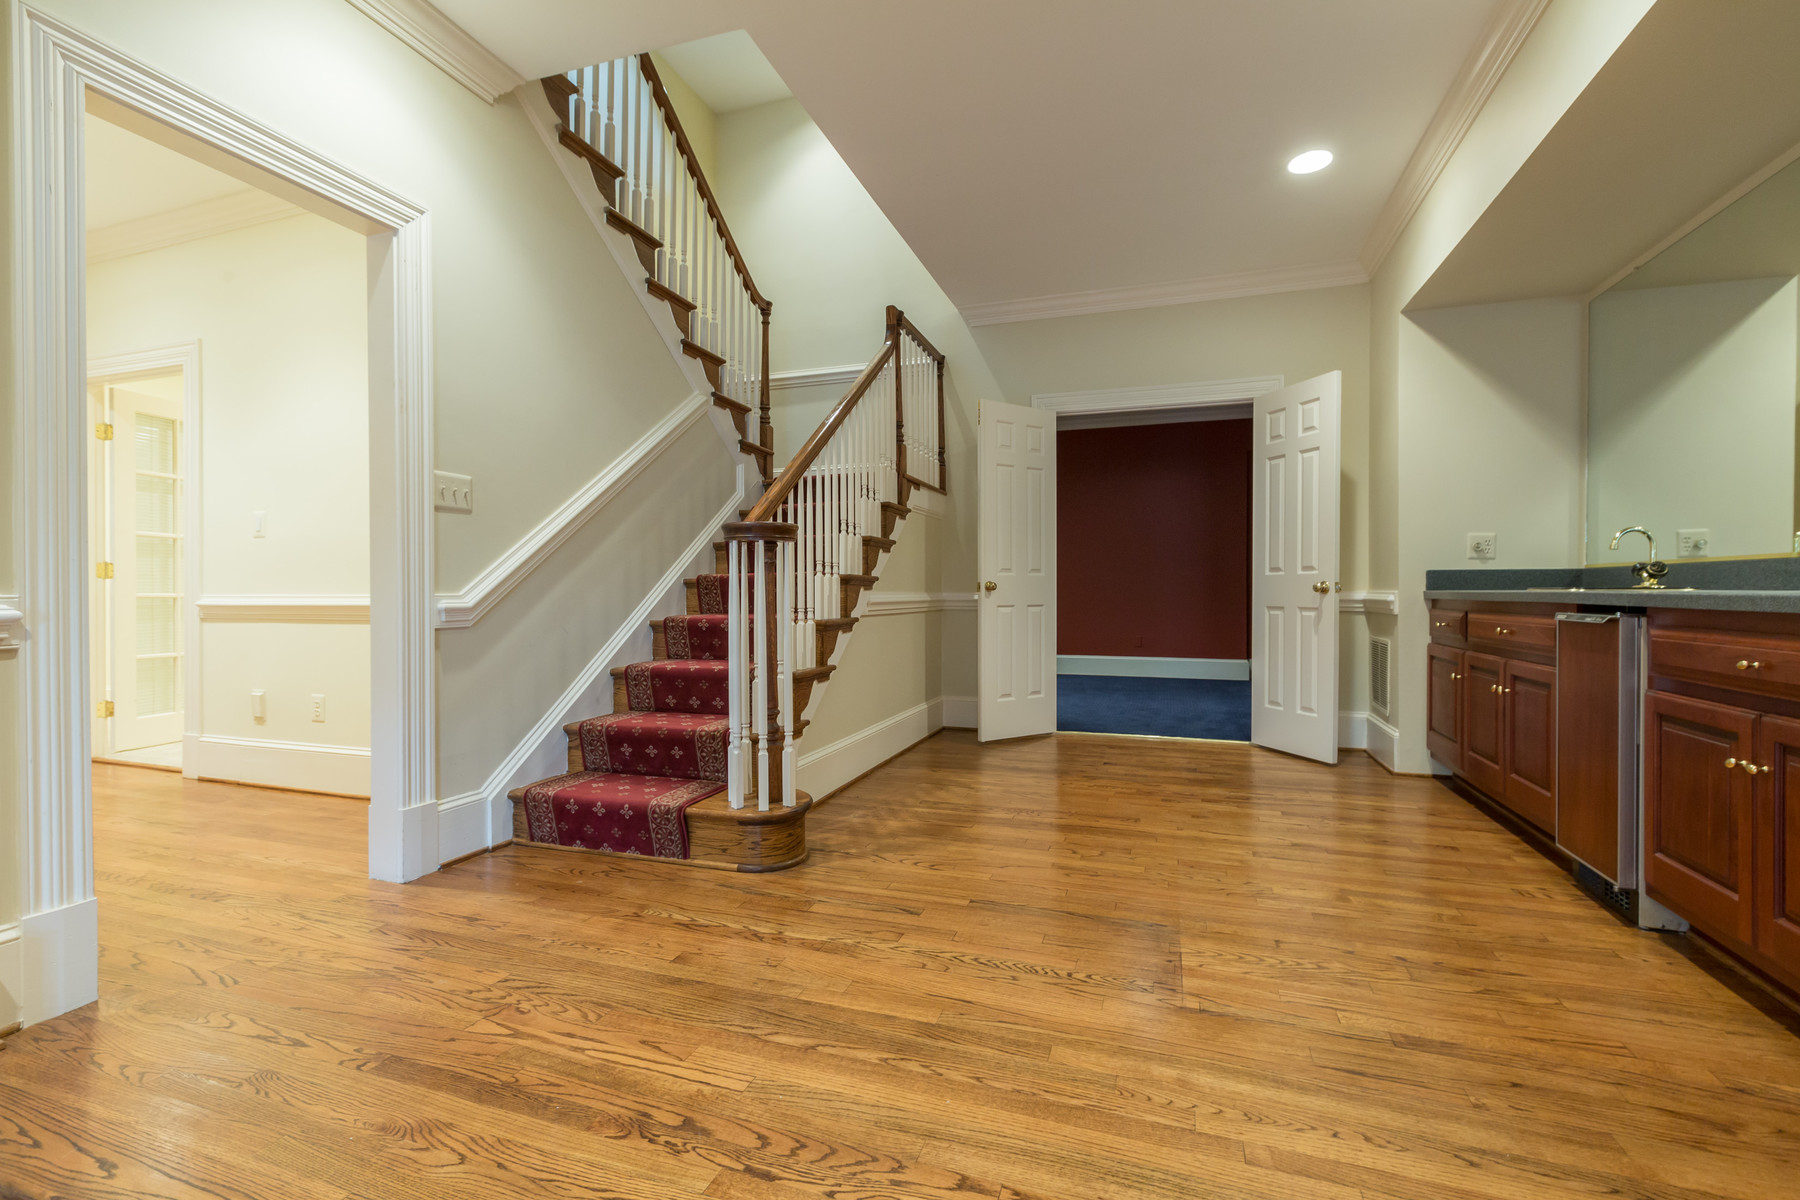 Additional photo for property listing at 1209 Stuart Robeson Drive, Mclean  McLean, Virginia 22101 Verenigde Staten